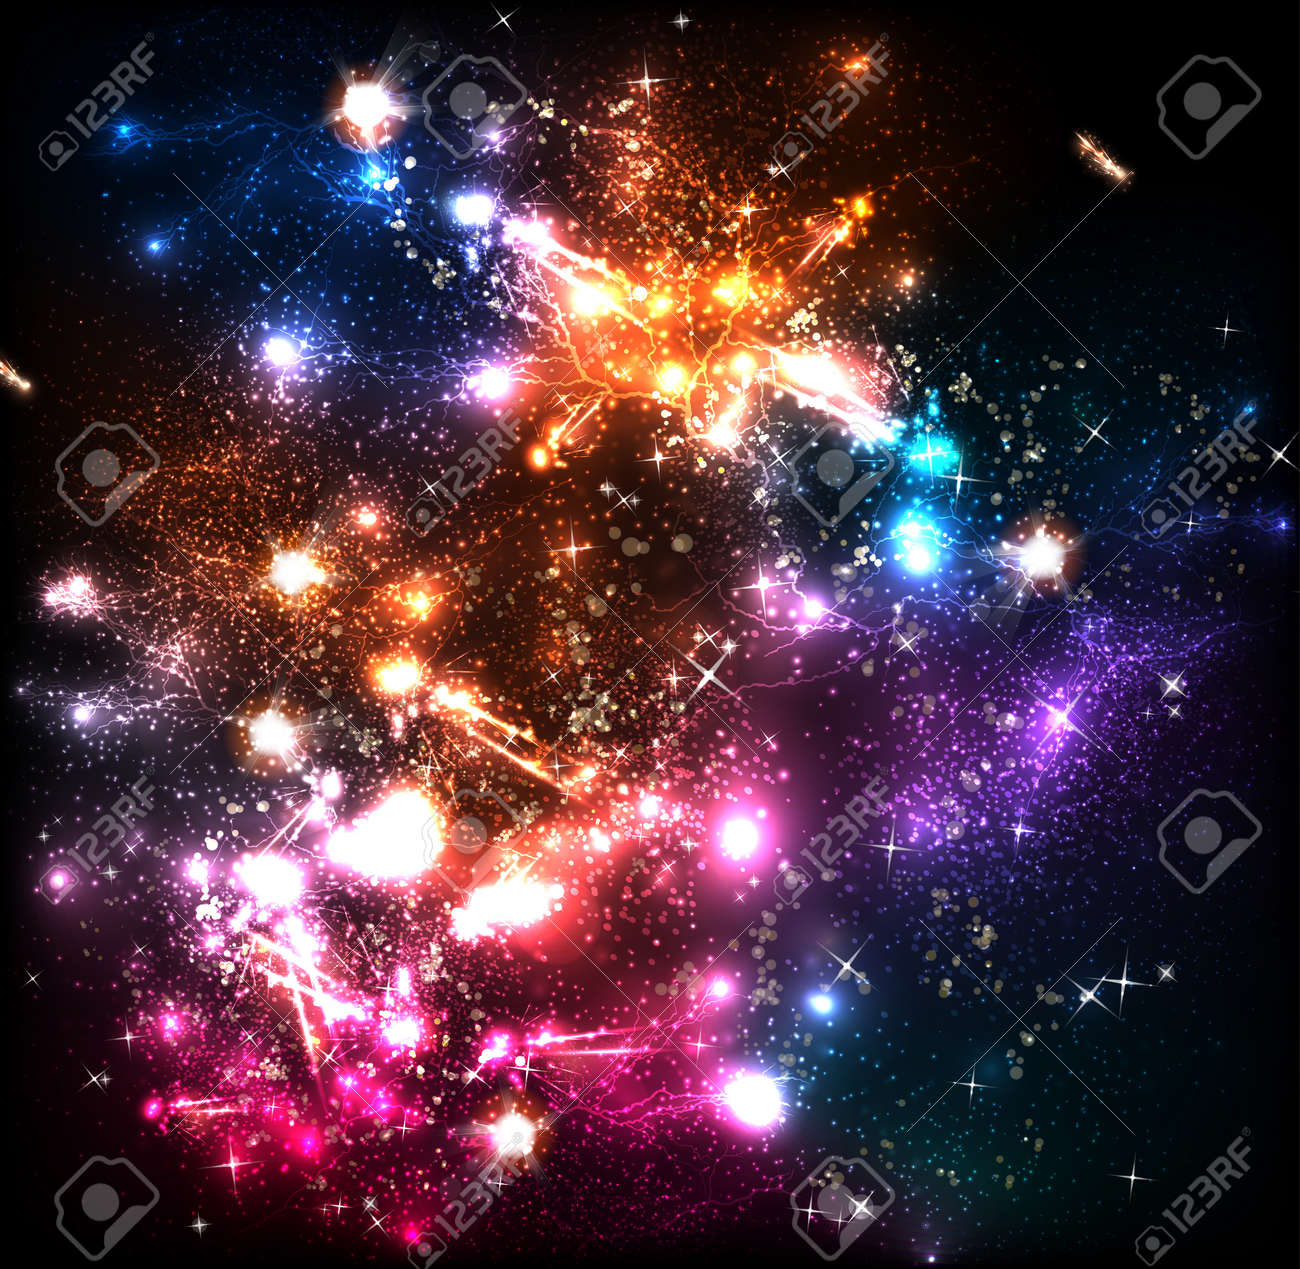 Space or lightning flash background, easy editable - 18531533